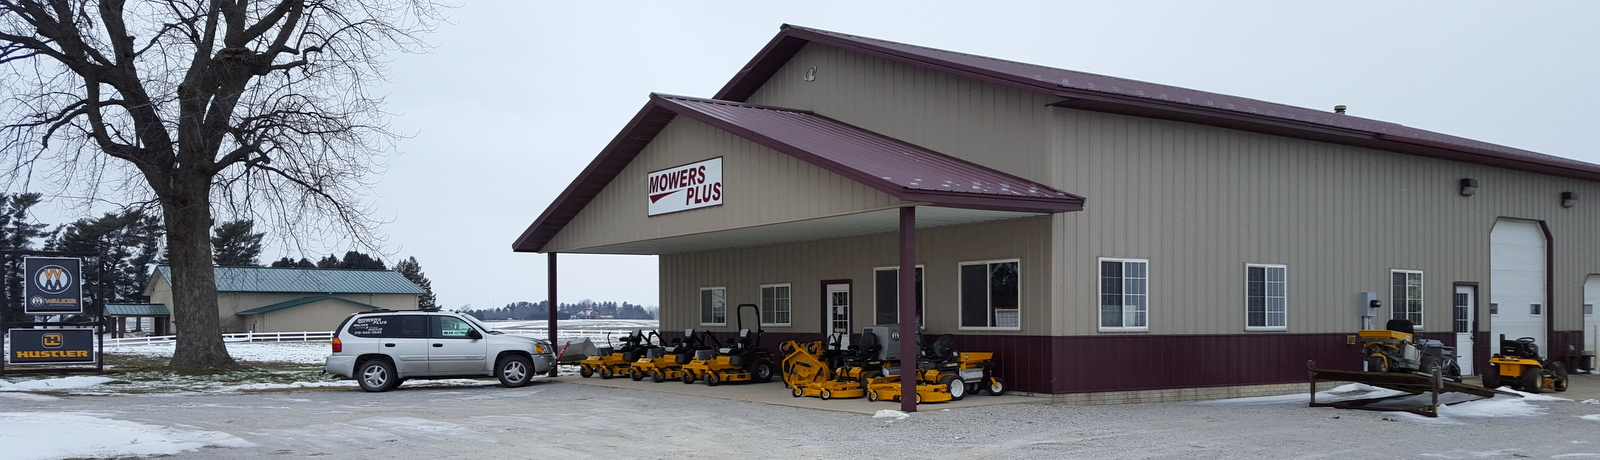 Mowers Plus Specializing In Walker And Hustler Sales And